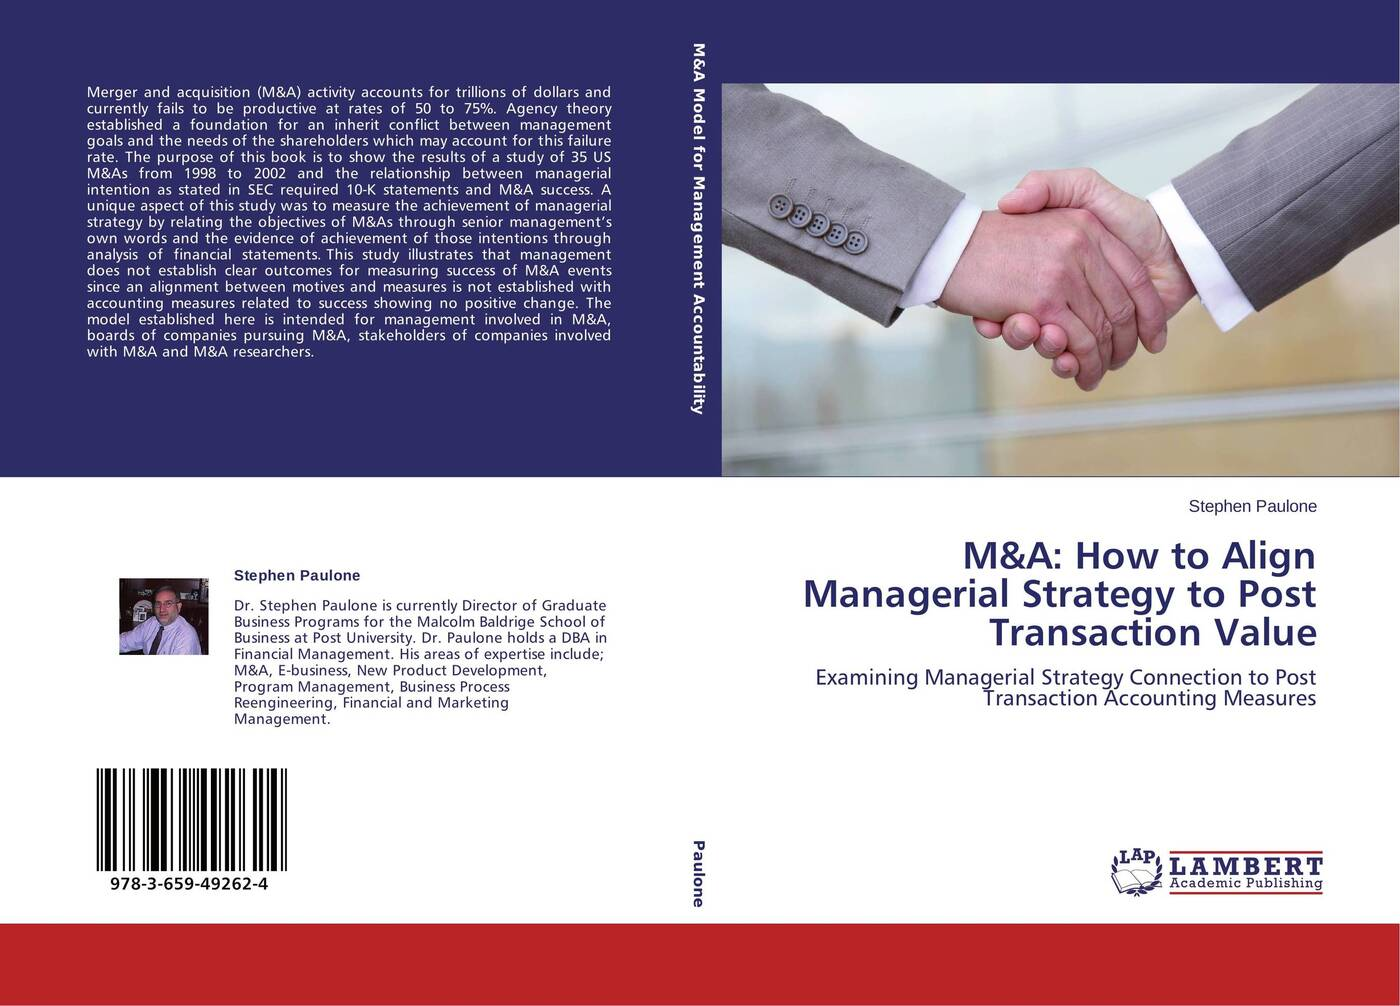 Фото - Stephen Paulone M&A: How to Align Managerial Strategy to Post Transaction Value standard usb 3 0 a male am to usb 3 0 a female af usb3 0 extension cable 0 3 m 0 6 m 1 m 1 5 m 1 8m 3m 1ft 2ft 3ft 5ft 6ft 10ft